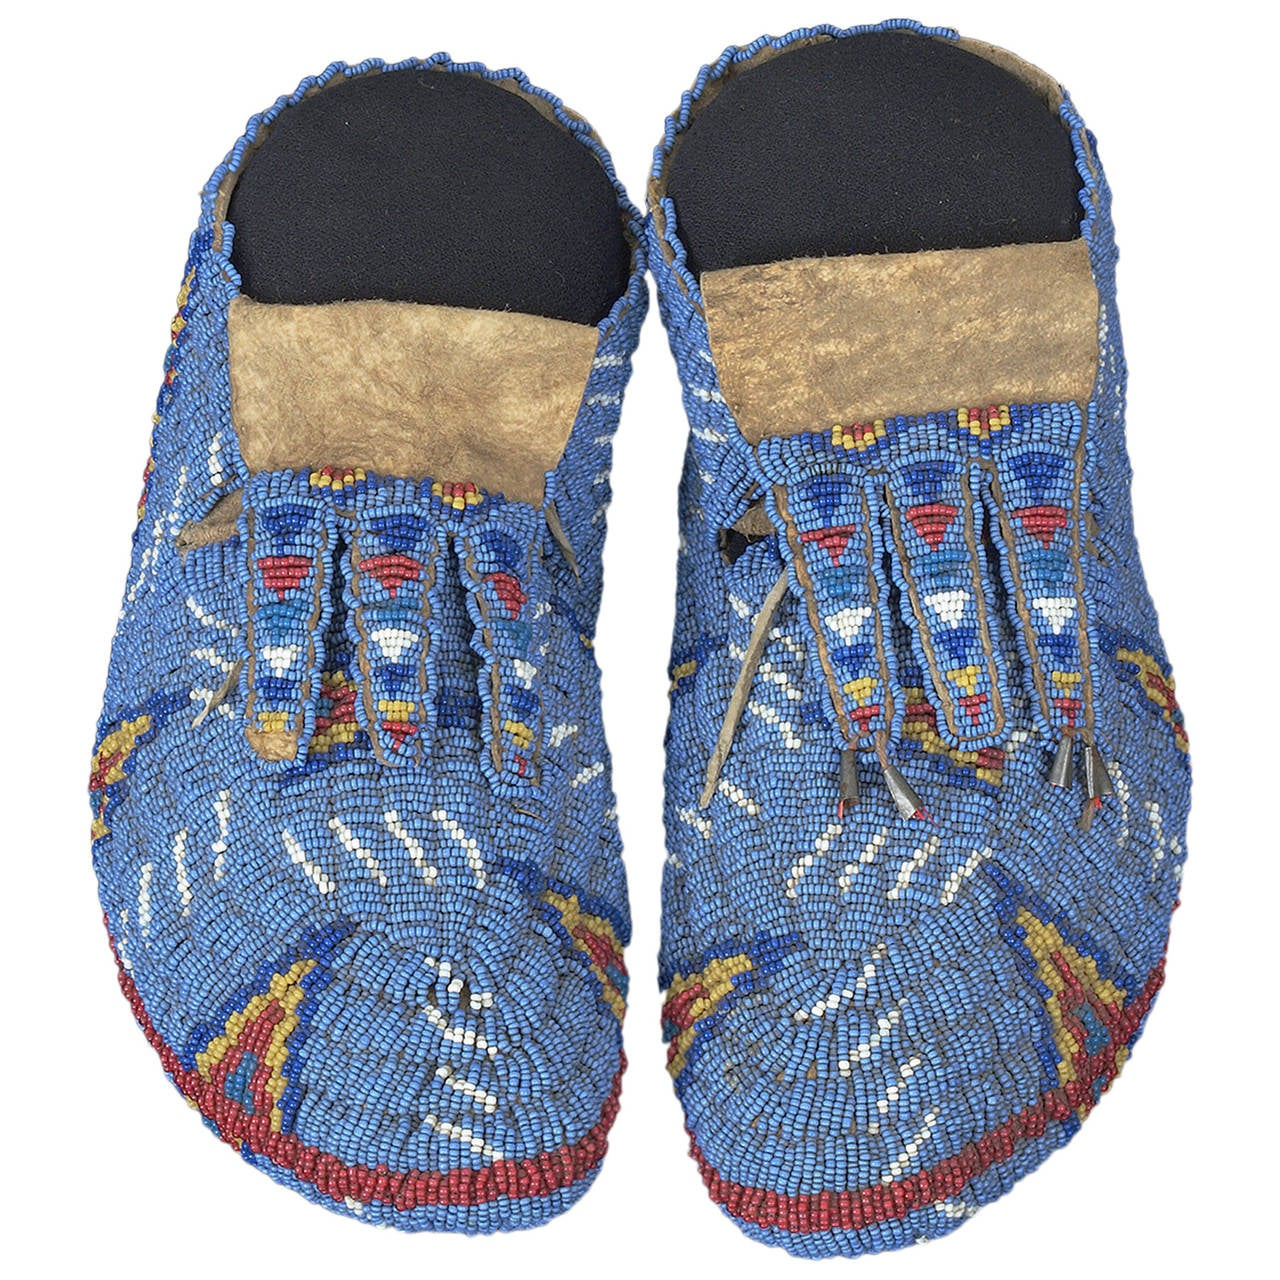 Antique American Indian Beaded Ceremonial Moccasins, Sioux, Early 20th Century